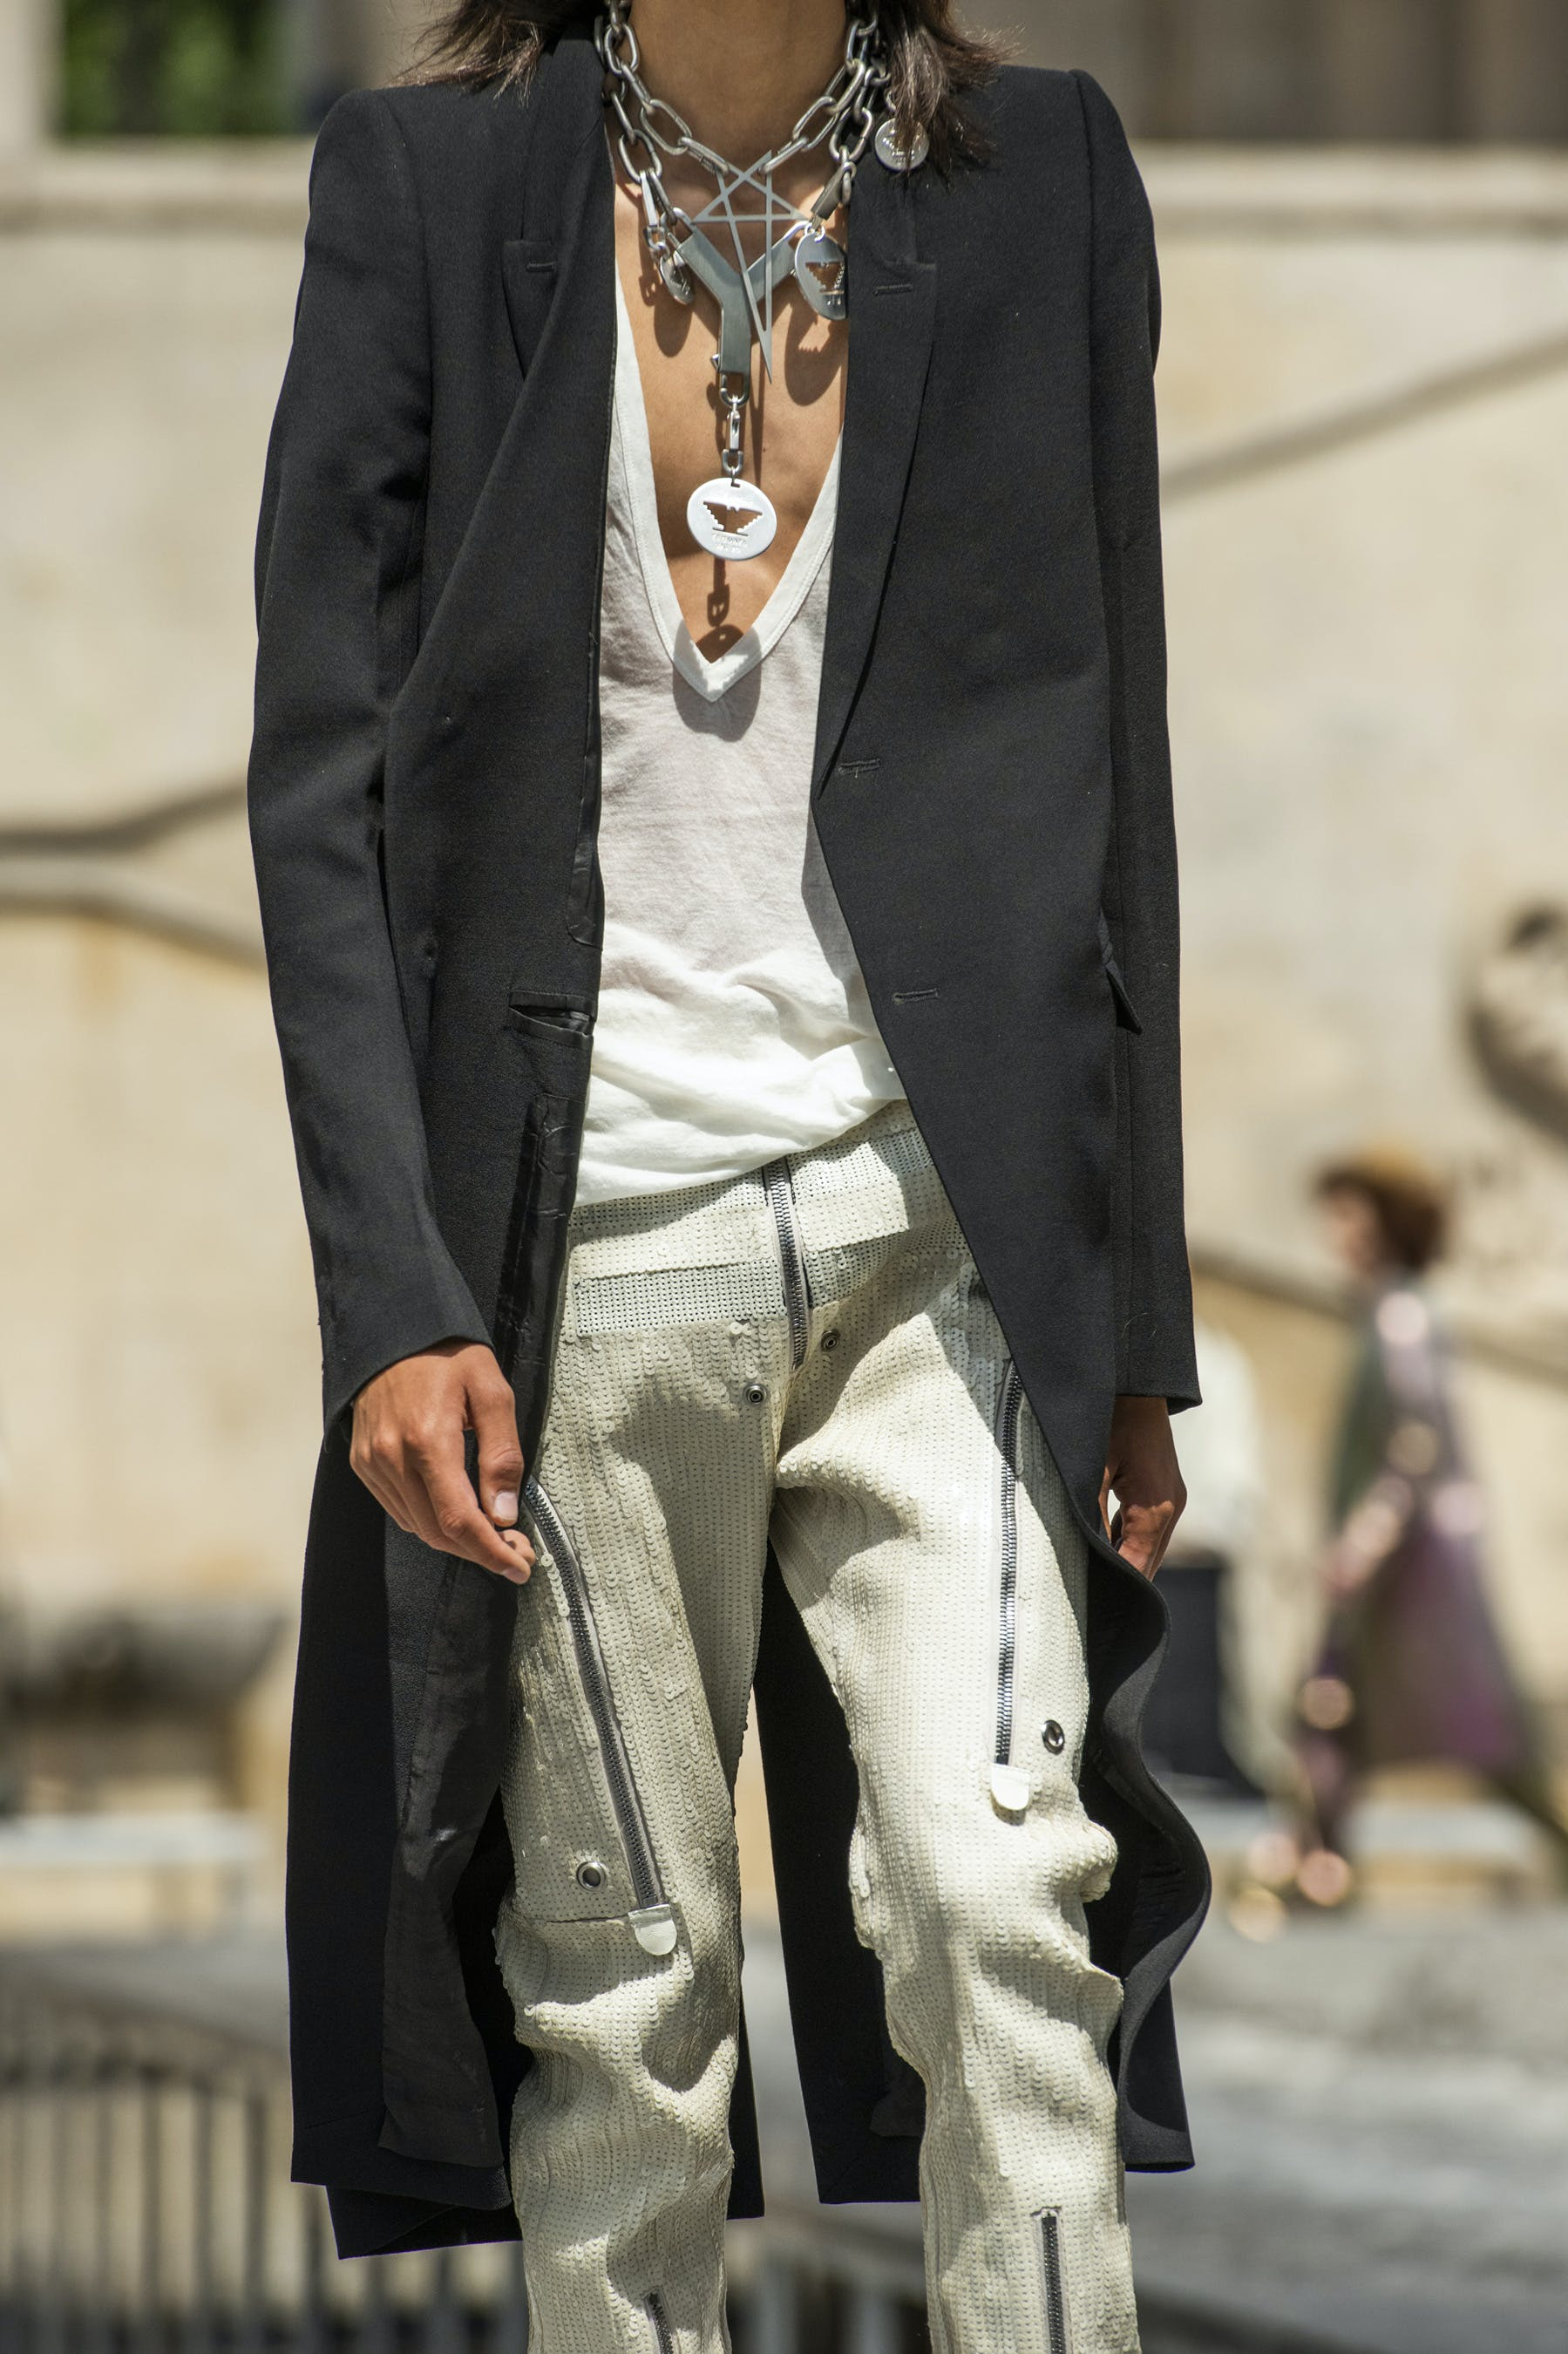 Rick Owens Runway Details Long Coat in Black Champion Collaboration V Neck T Shirt  Bauhaus Hand Embroidered Sequins Cargo Pants in White Mens SS20 Tecautl